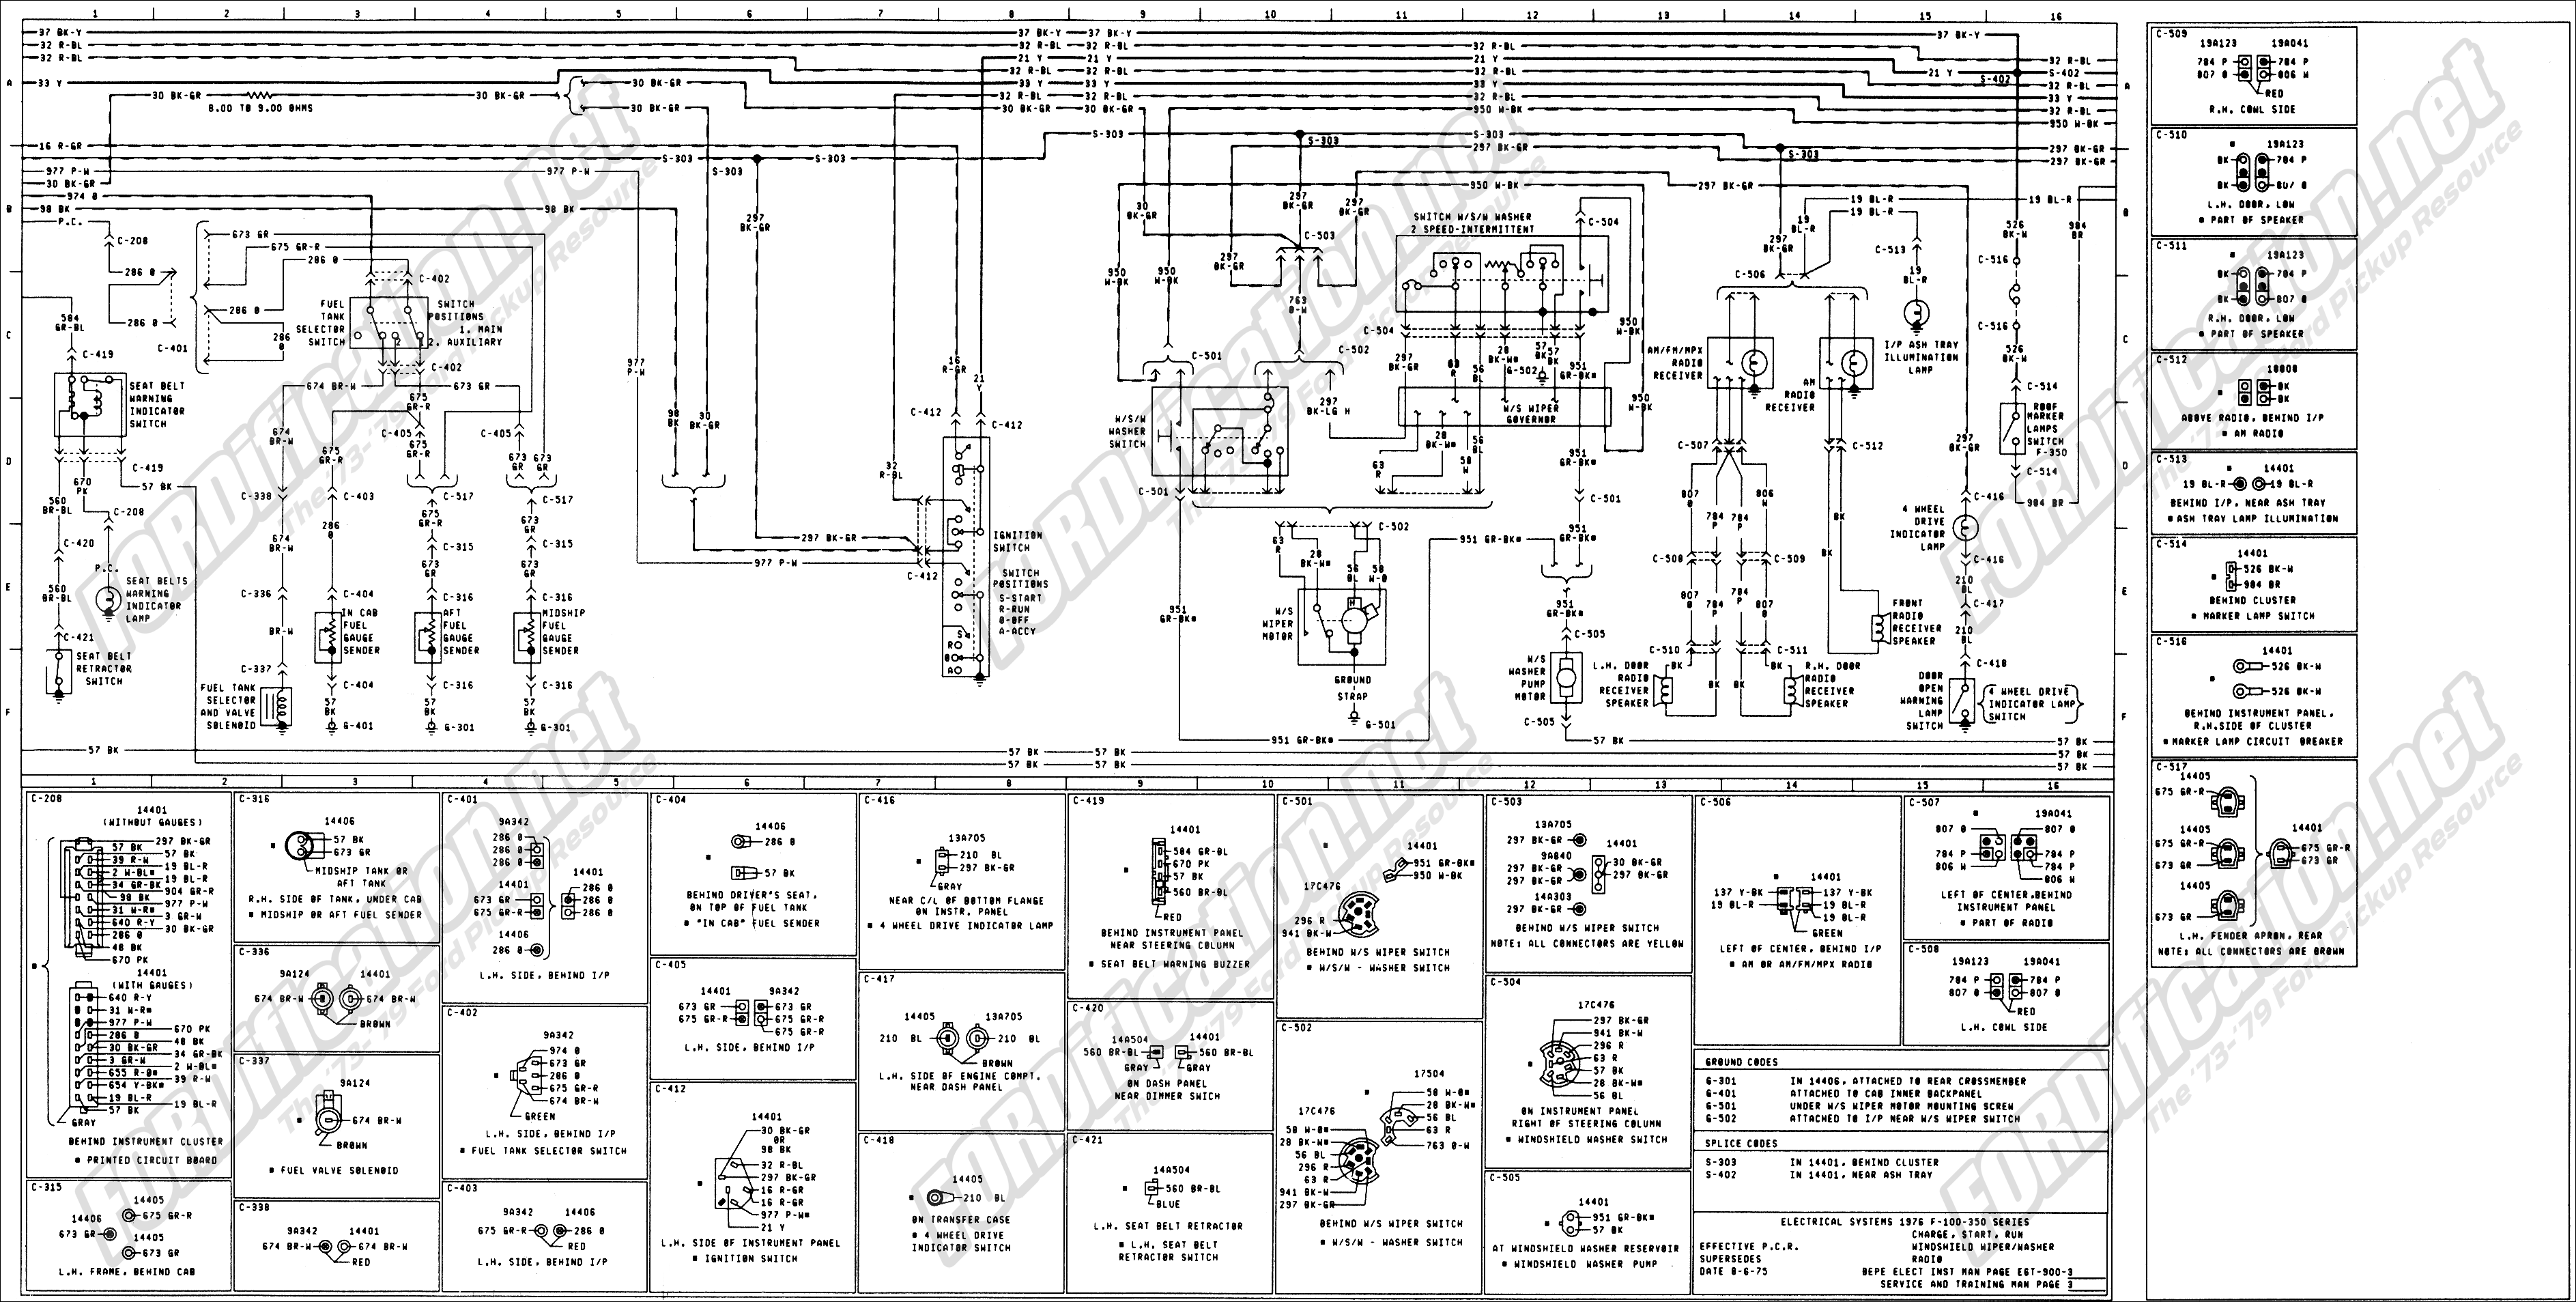 wiring_76master_3of9 1973 1979 ford truck wiring diagrams & schematics fordification net f250 wiring diagram at nearapp.co